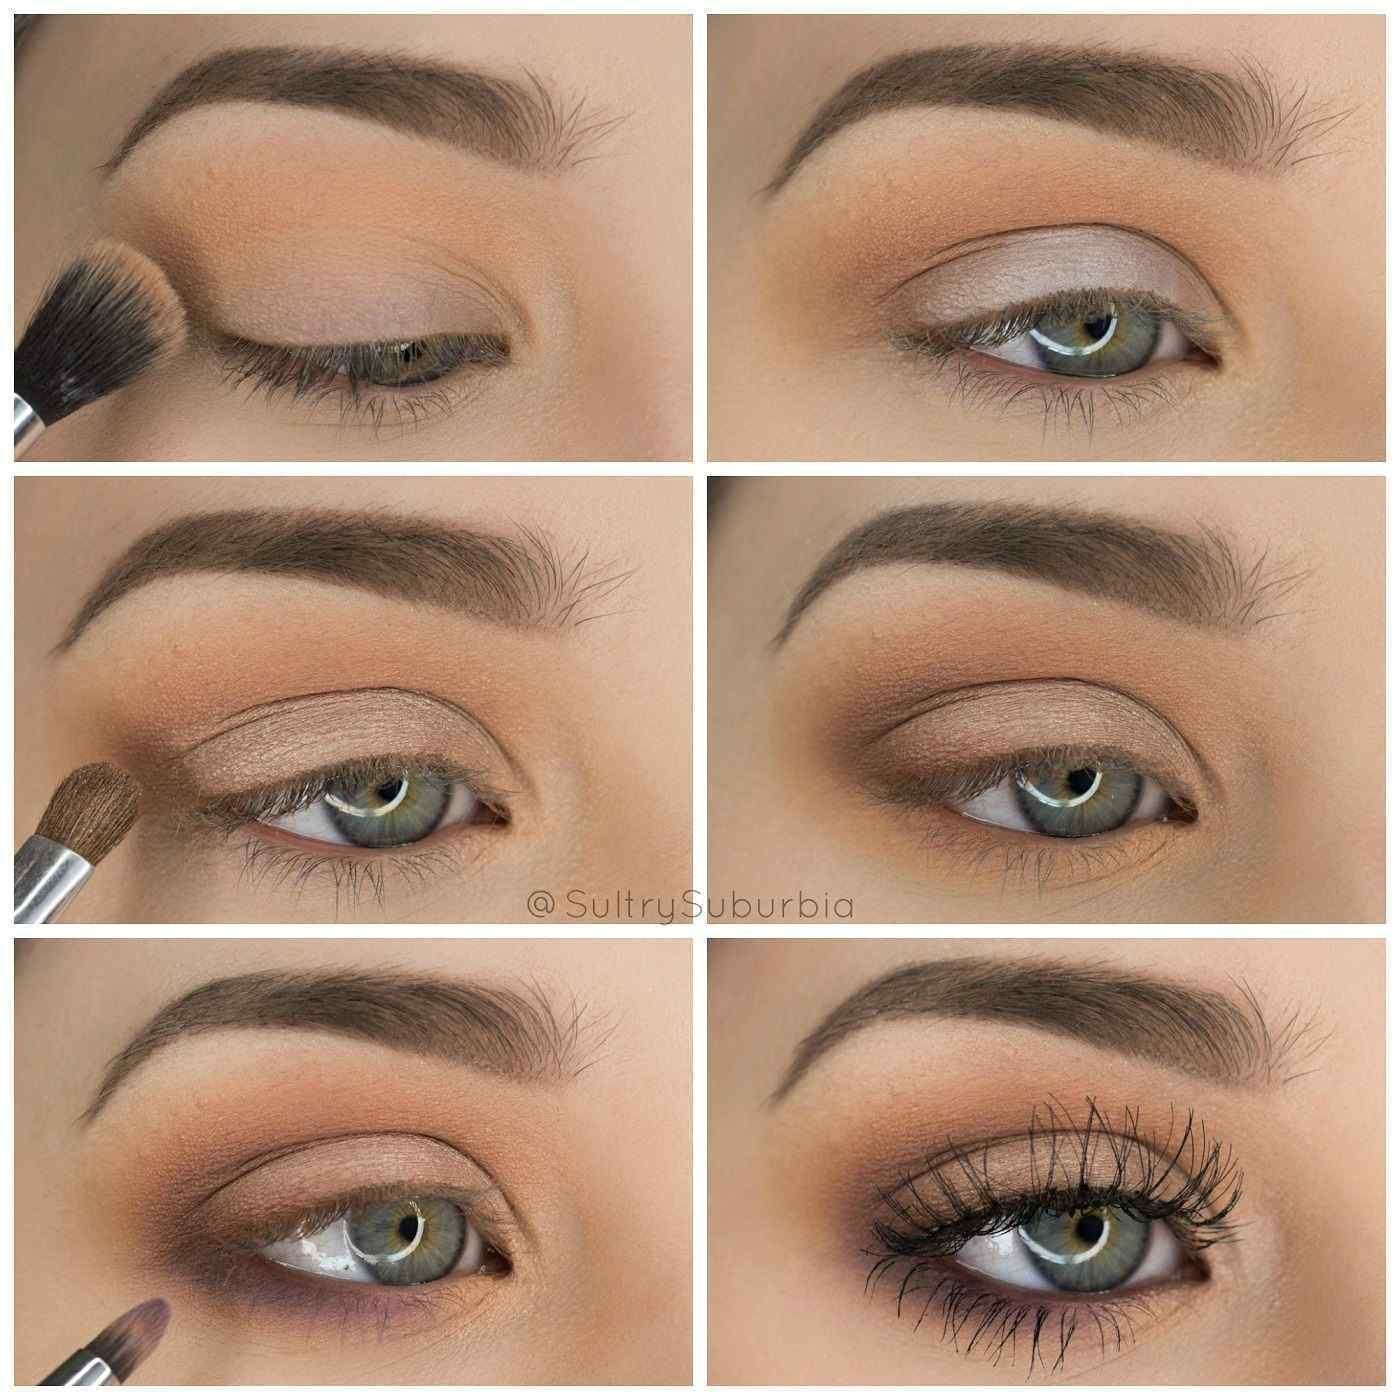 +20 Essential things for Beautiful Makeup Ideas Step by